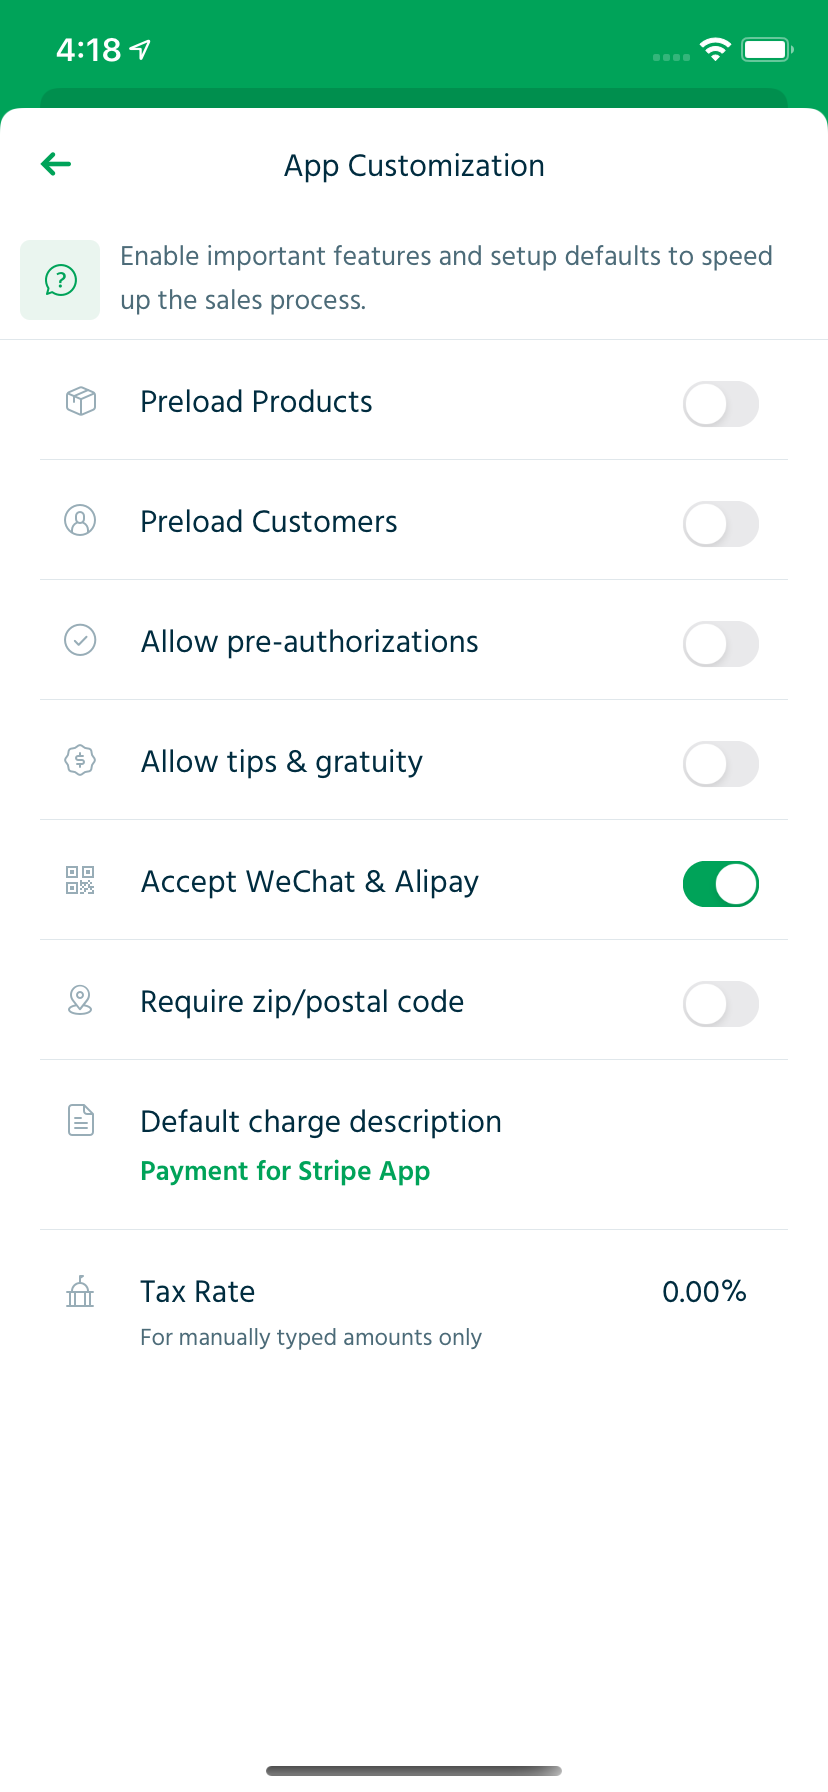 Enable Alipay or Alipay payments